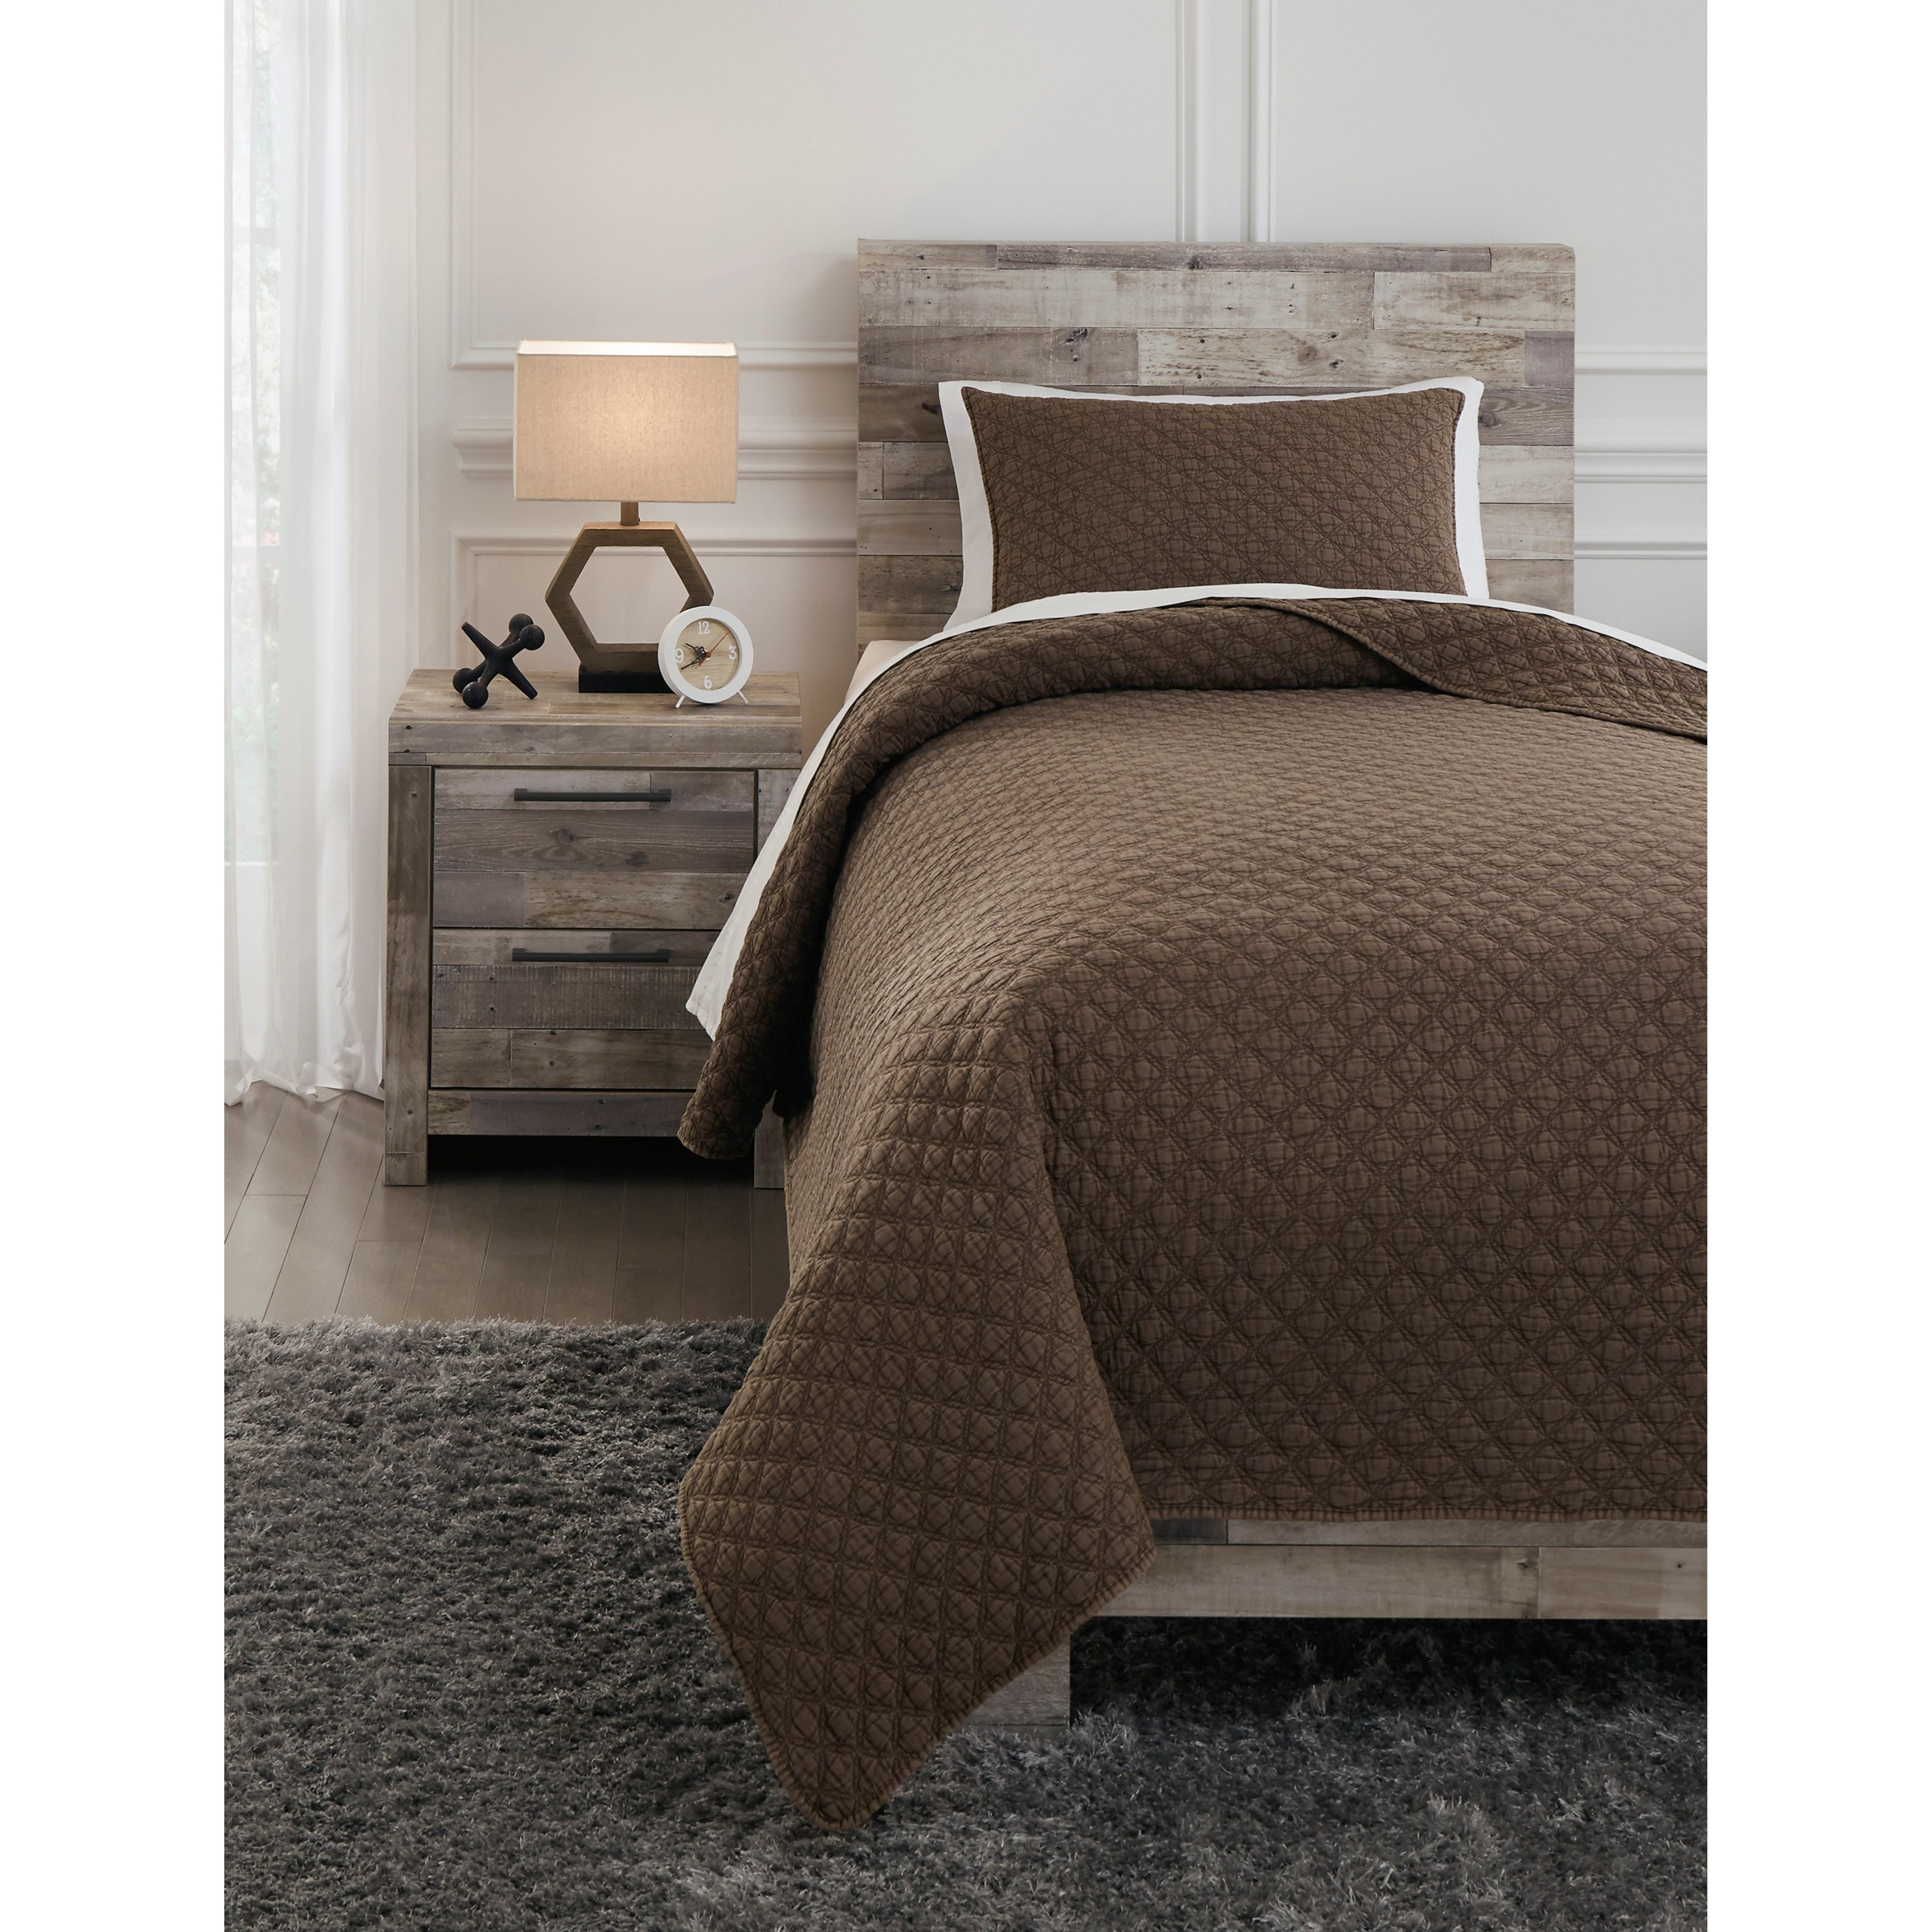 Bedding Sets Twin Ryter Brown Coverlet Set by Signature Design by Ashley at Household Furniture